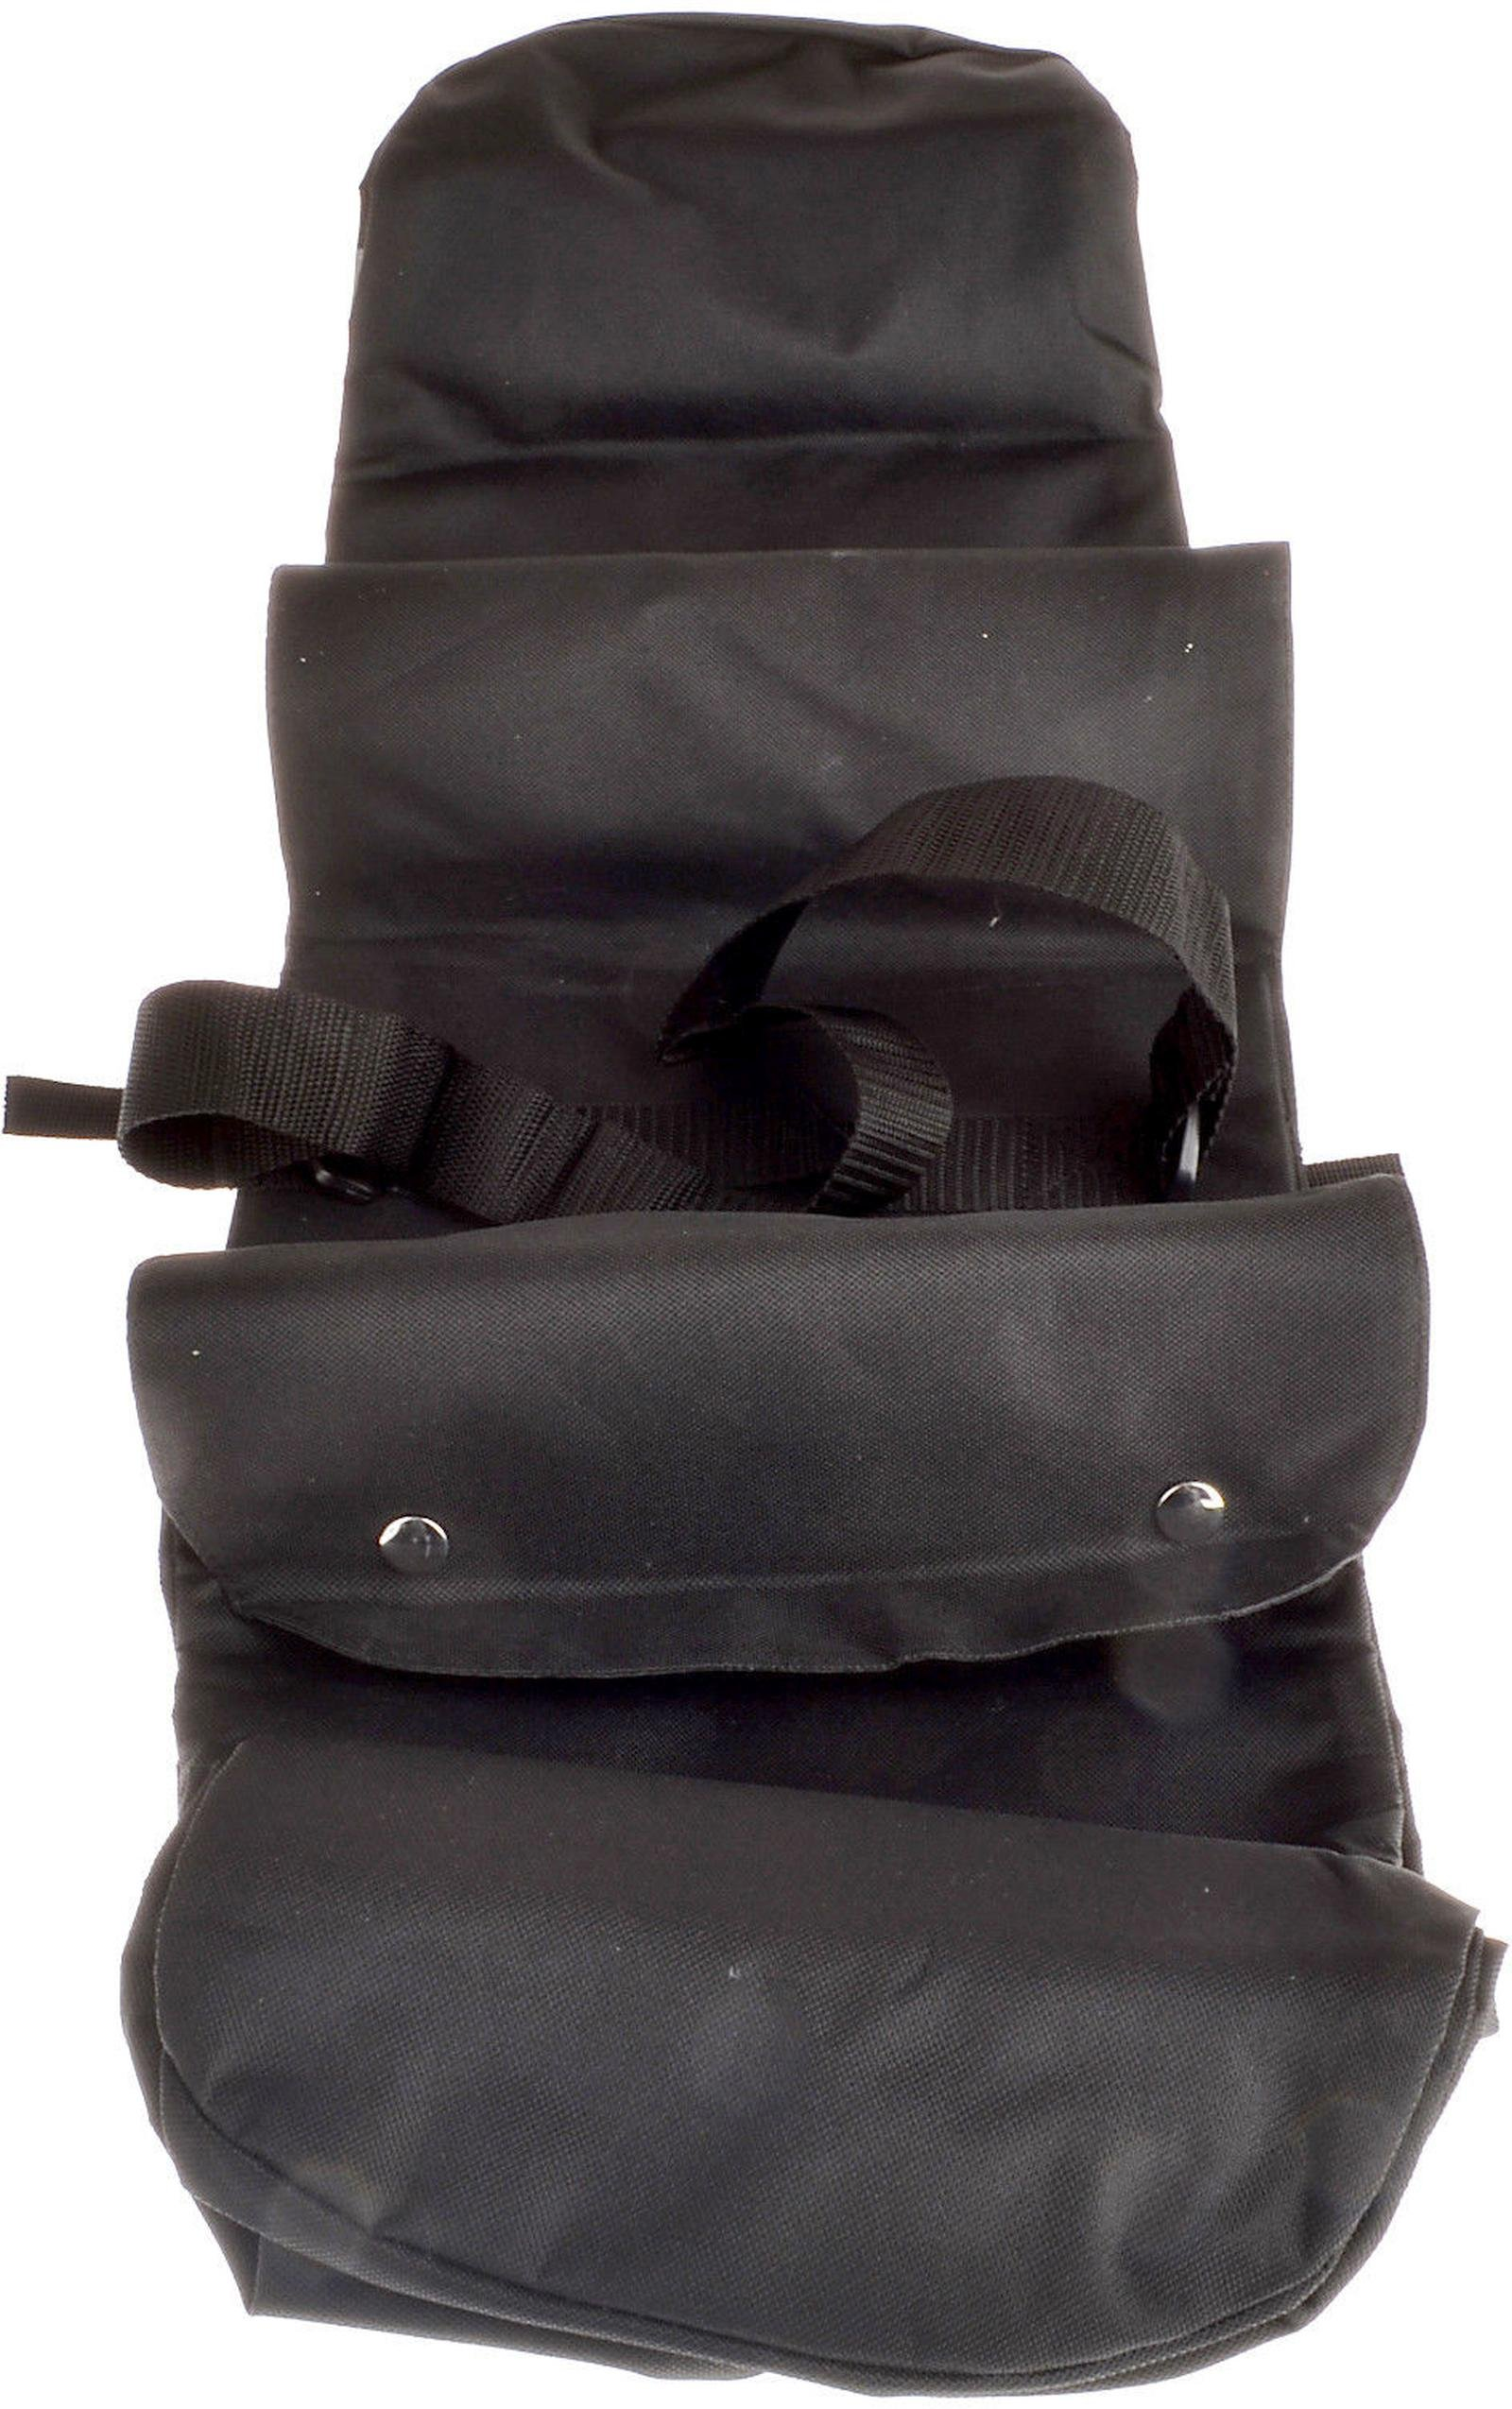 Huffy Cruiser Rollup Rear Pannier Bag Black by HUFY (Image #5)